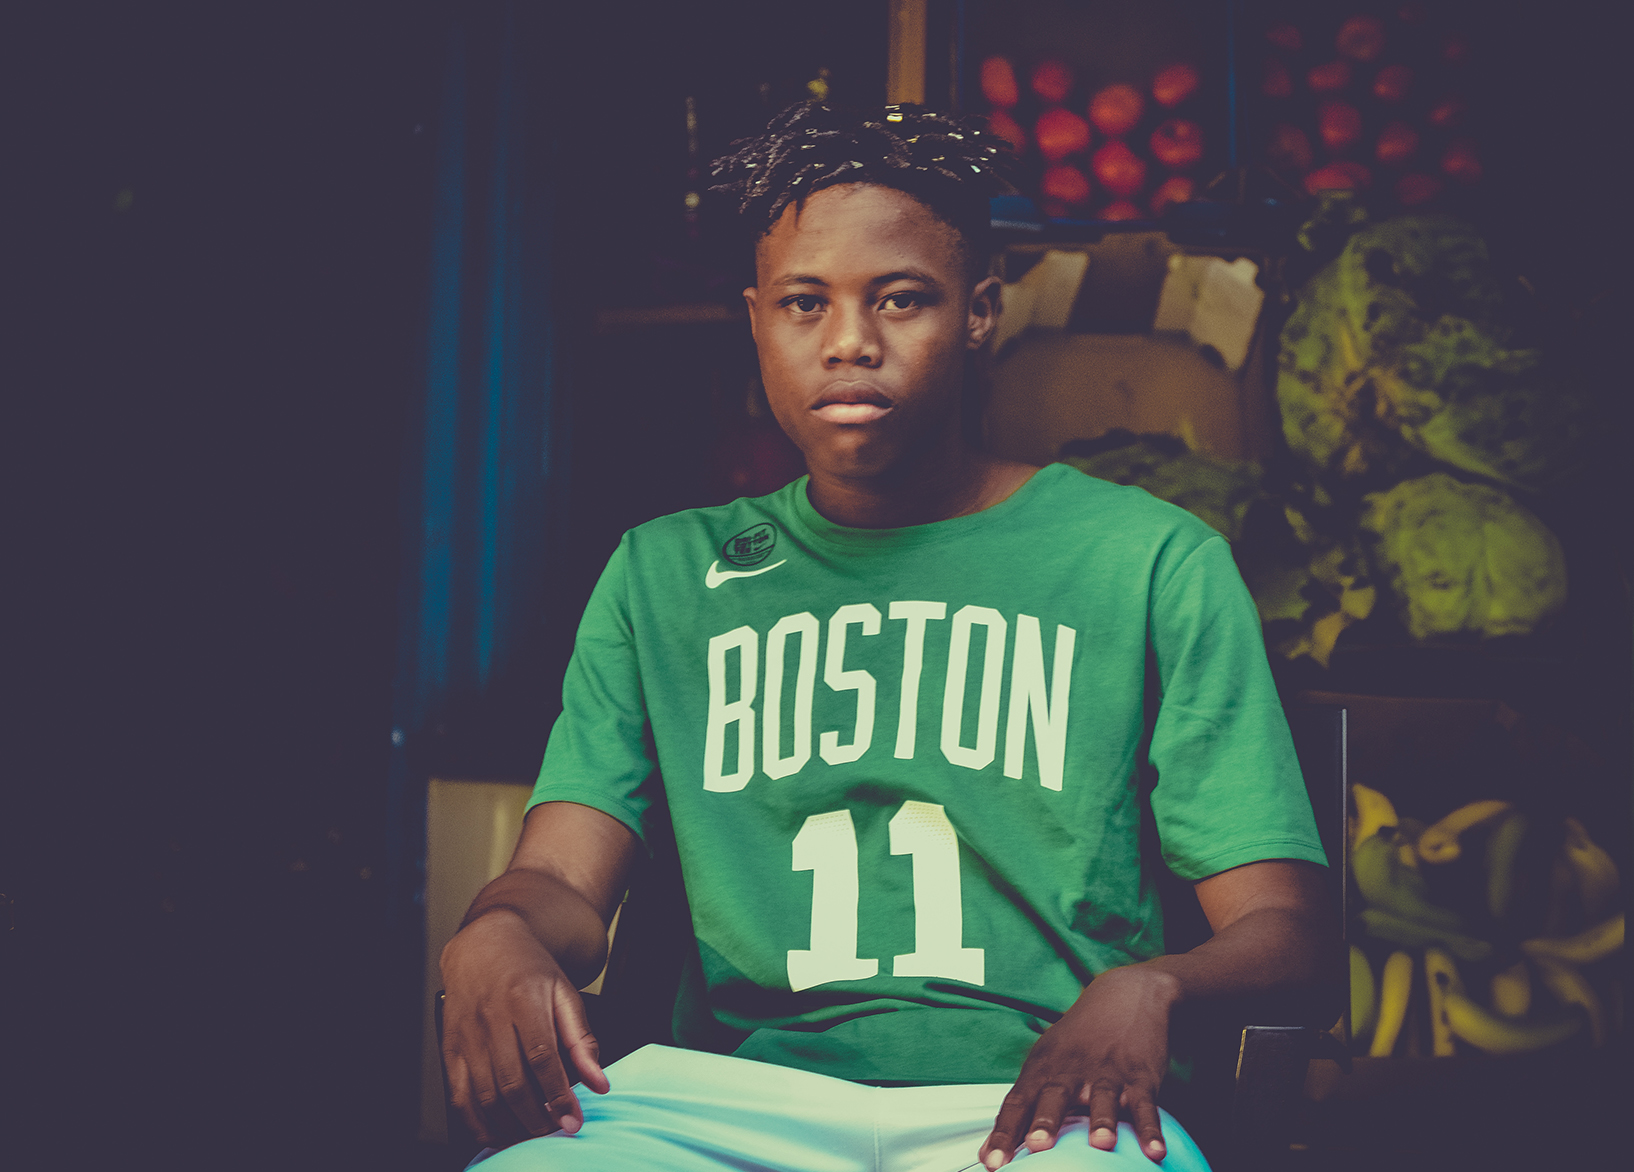 1c33d36ee To go along with the latest Nike's NBA Merchandise, we got our hands on the  latest Kyrie Irving's Boston Celtics Nike Dri-FIT Tee.